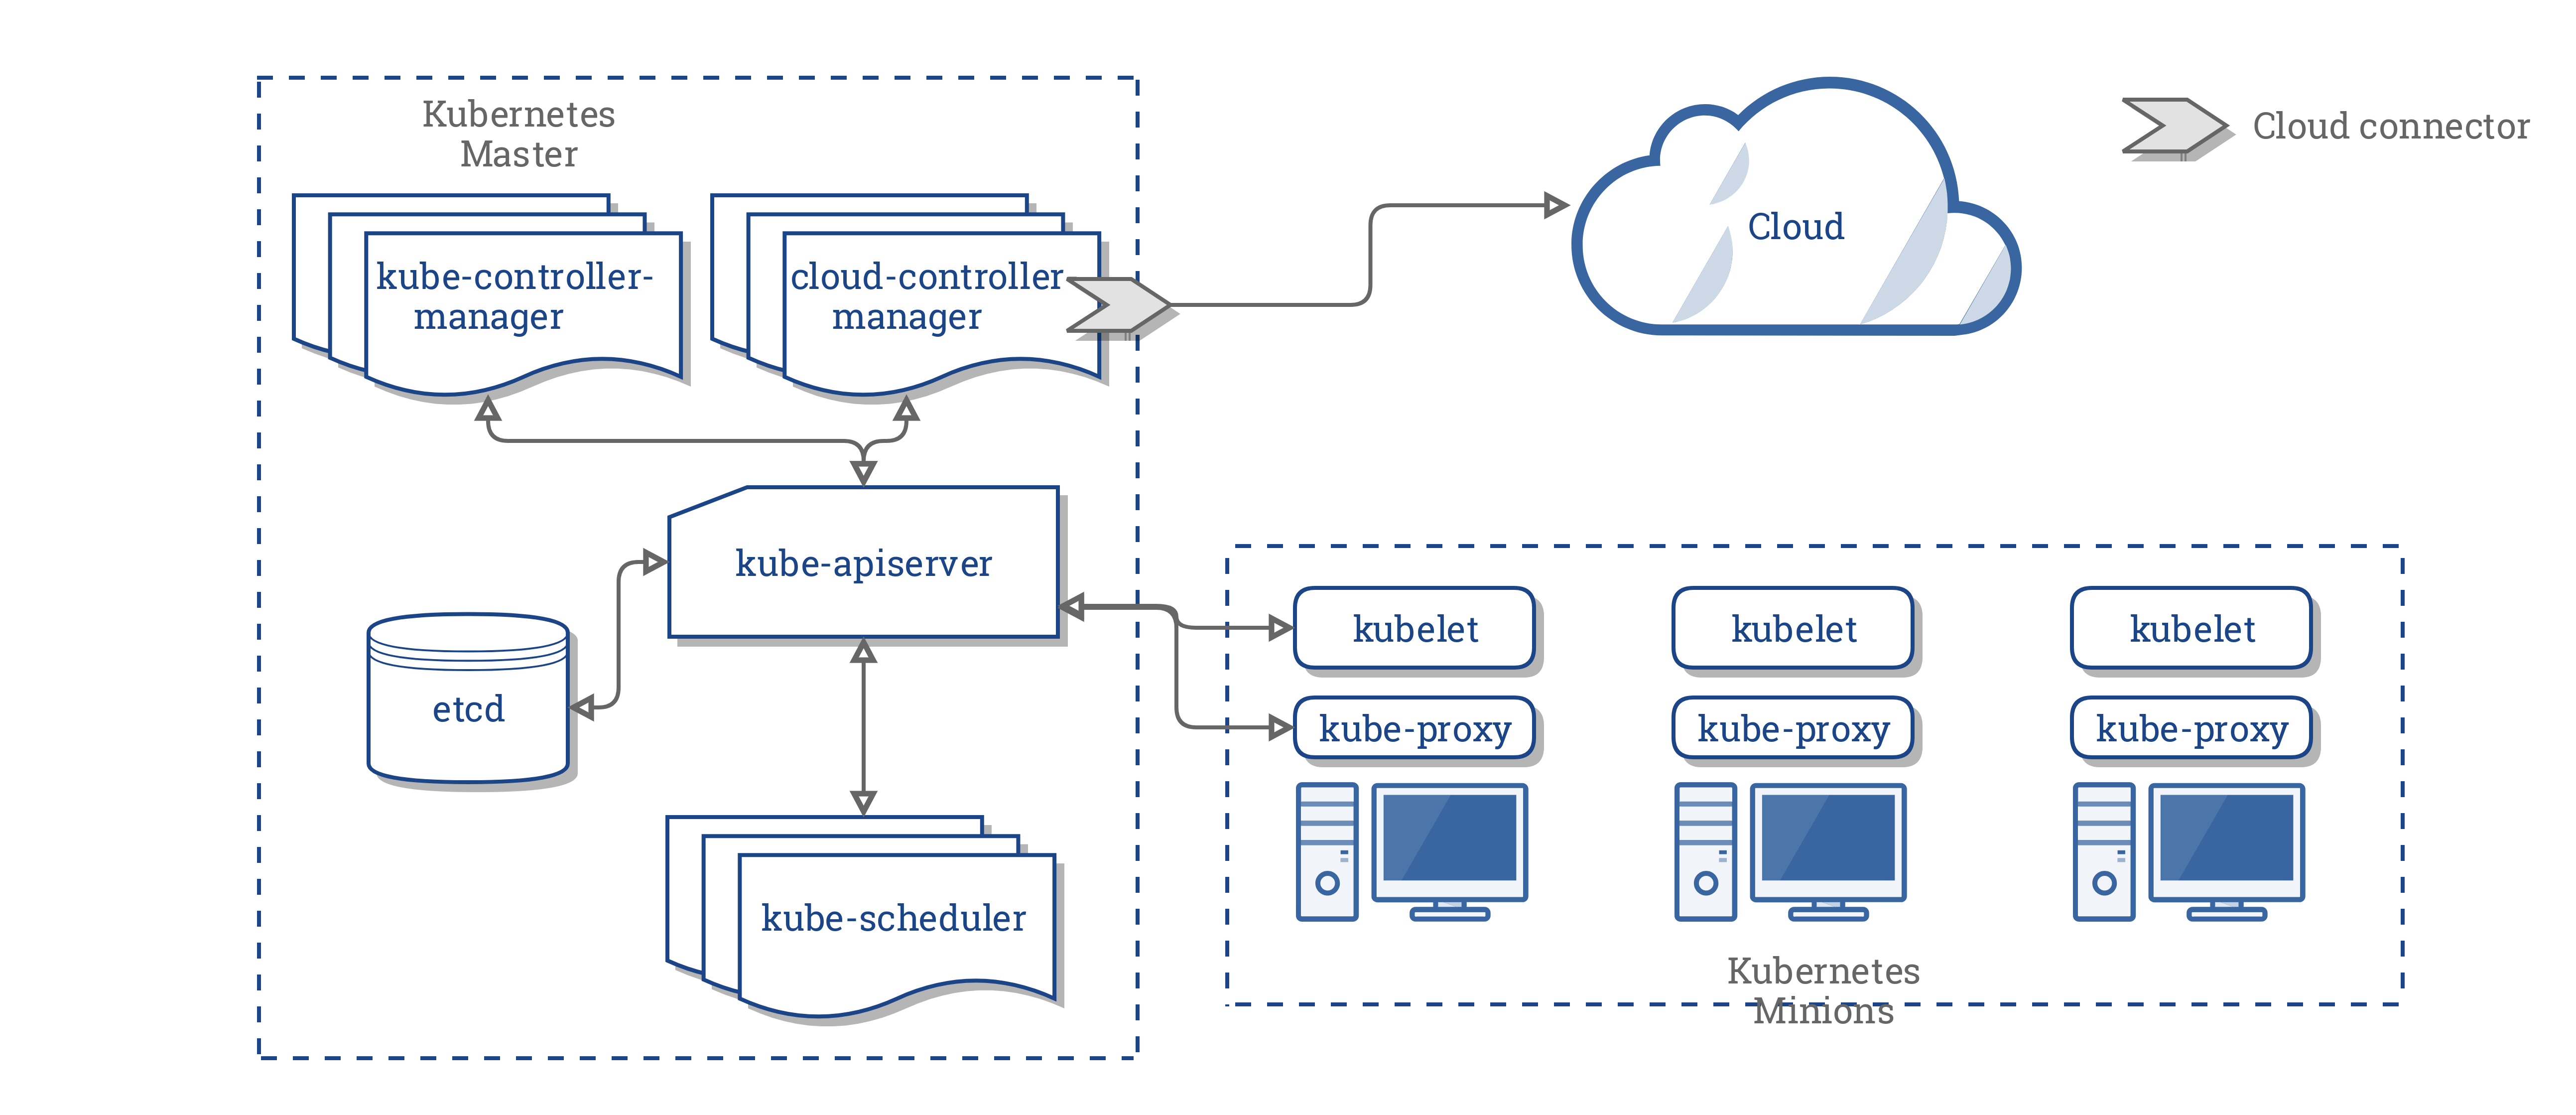 Out-of-Tree Cloud Provider Architecture (source: kubernetes.io)